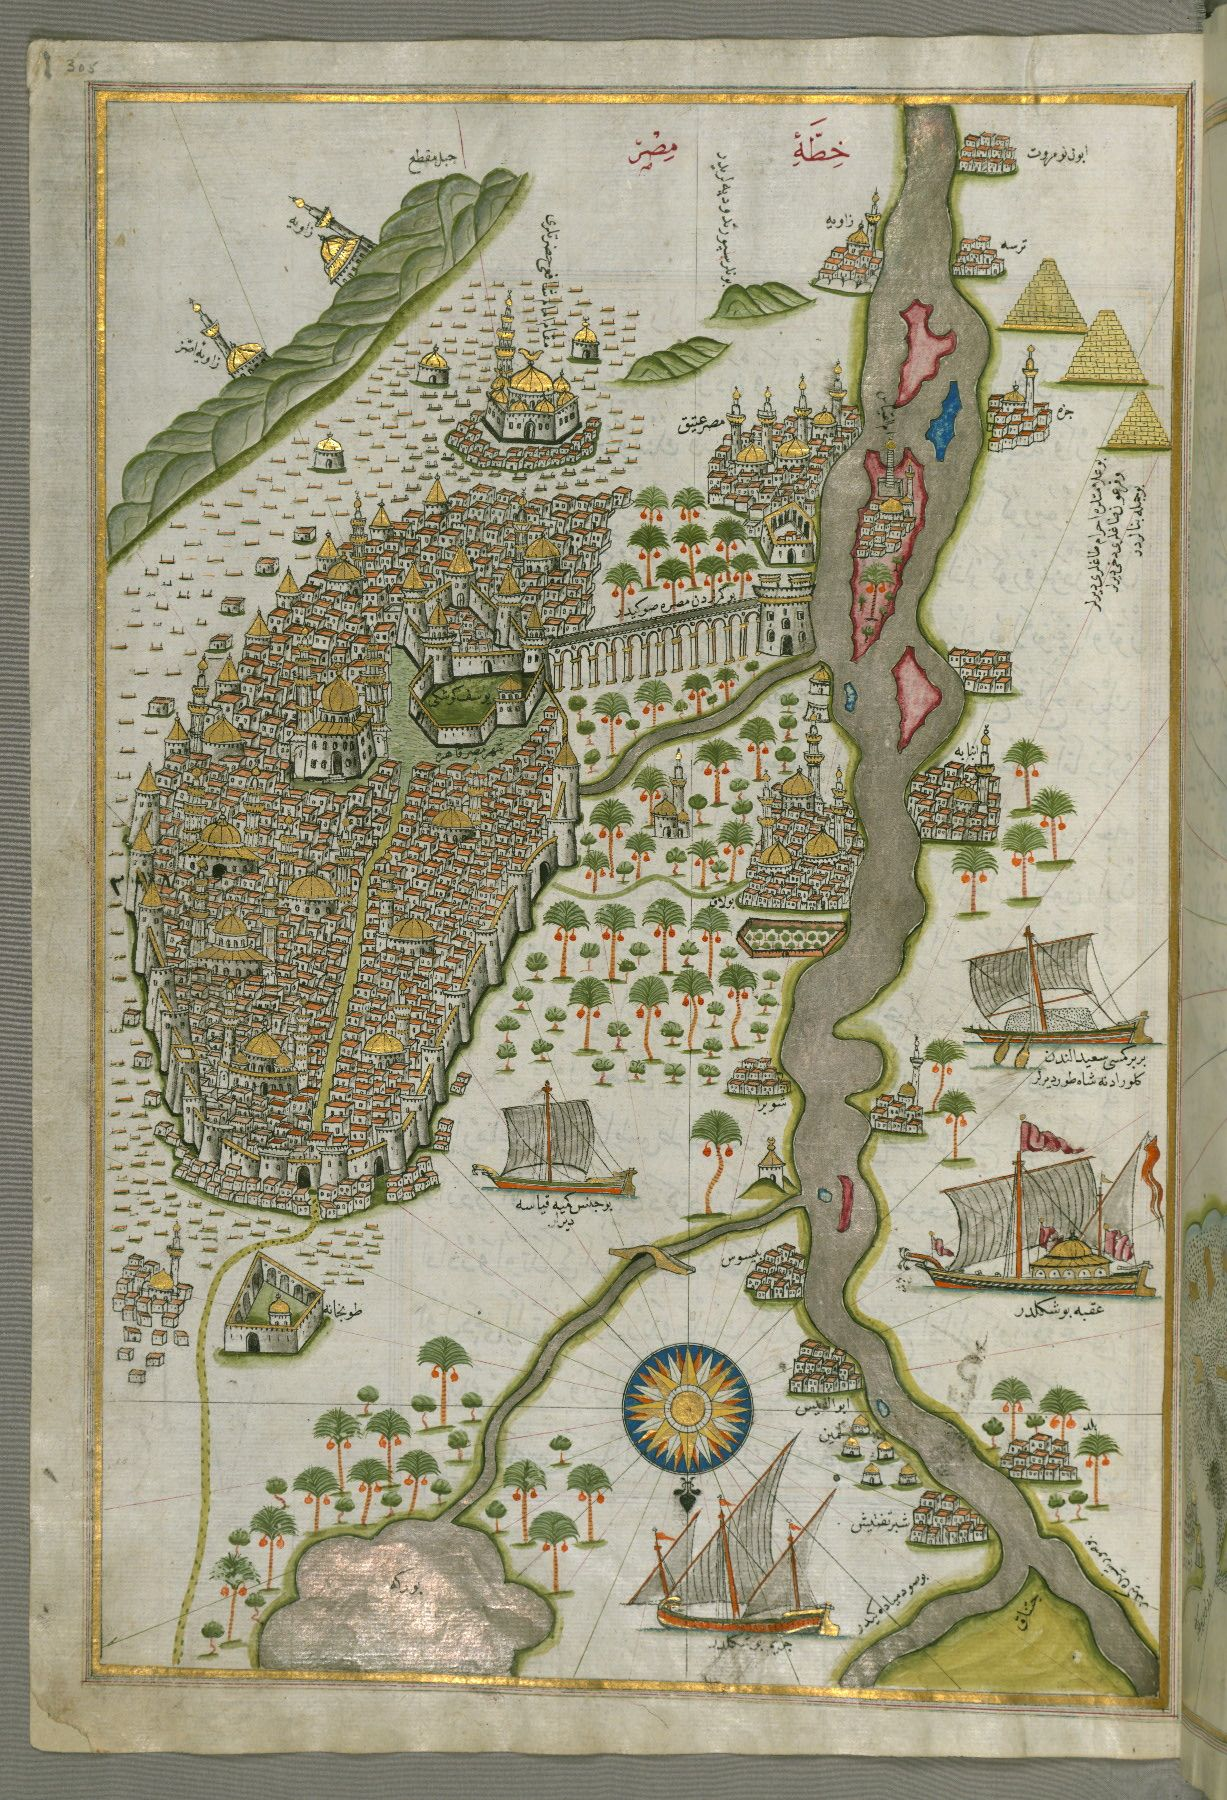 Illuminated Manuscript Map Of Cairo From Book On Navigation